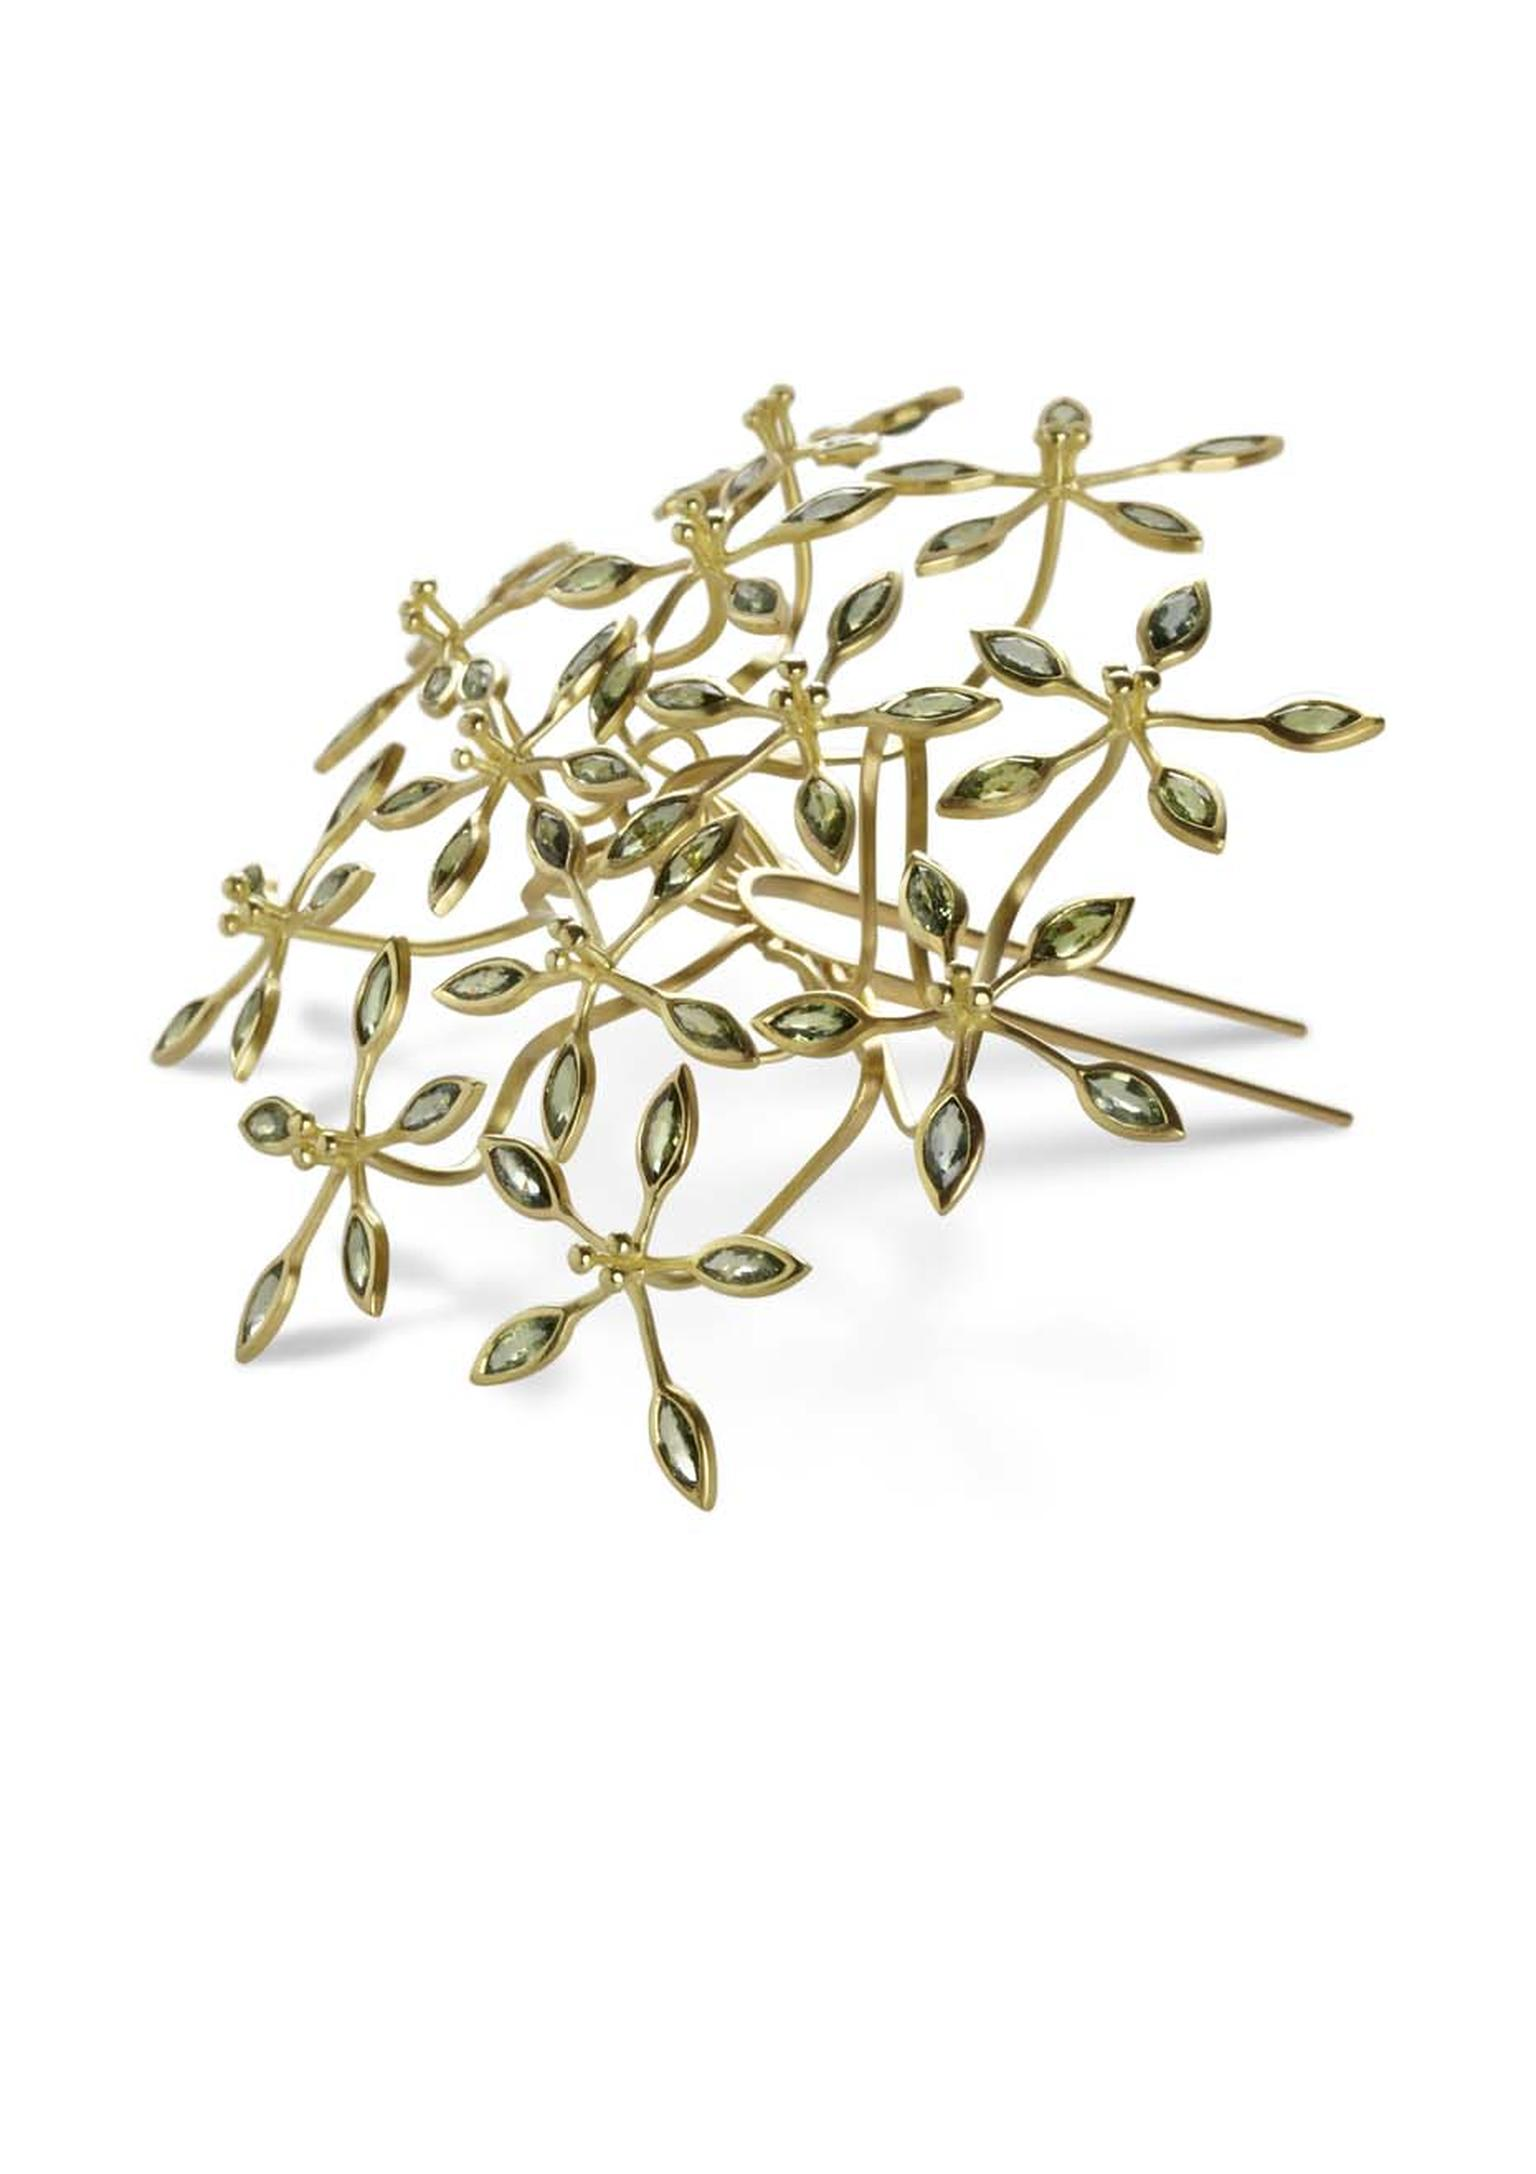 Jo Thorne Passion Flower gold hairpin set with 60 green sapphires.